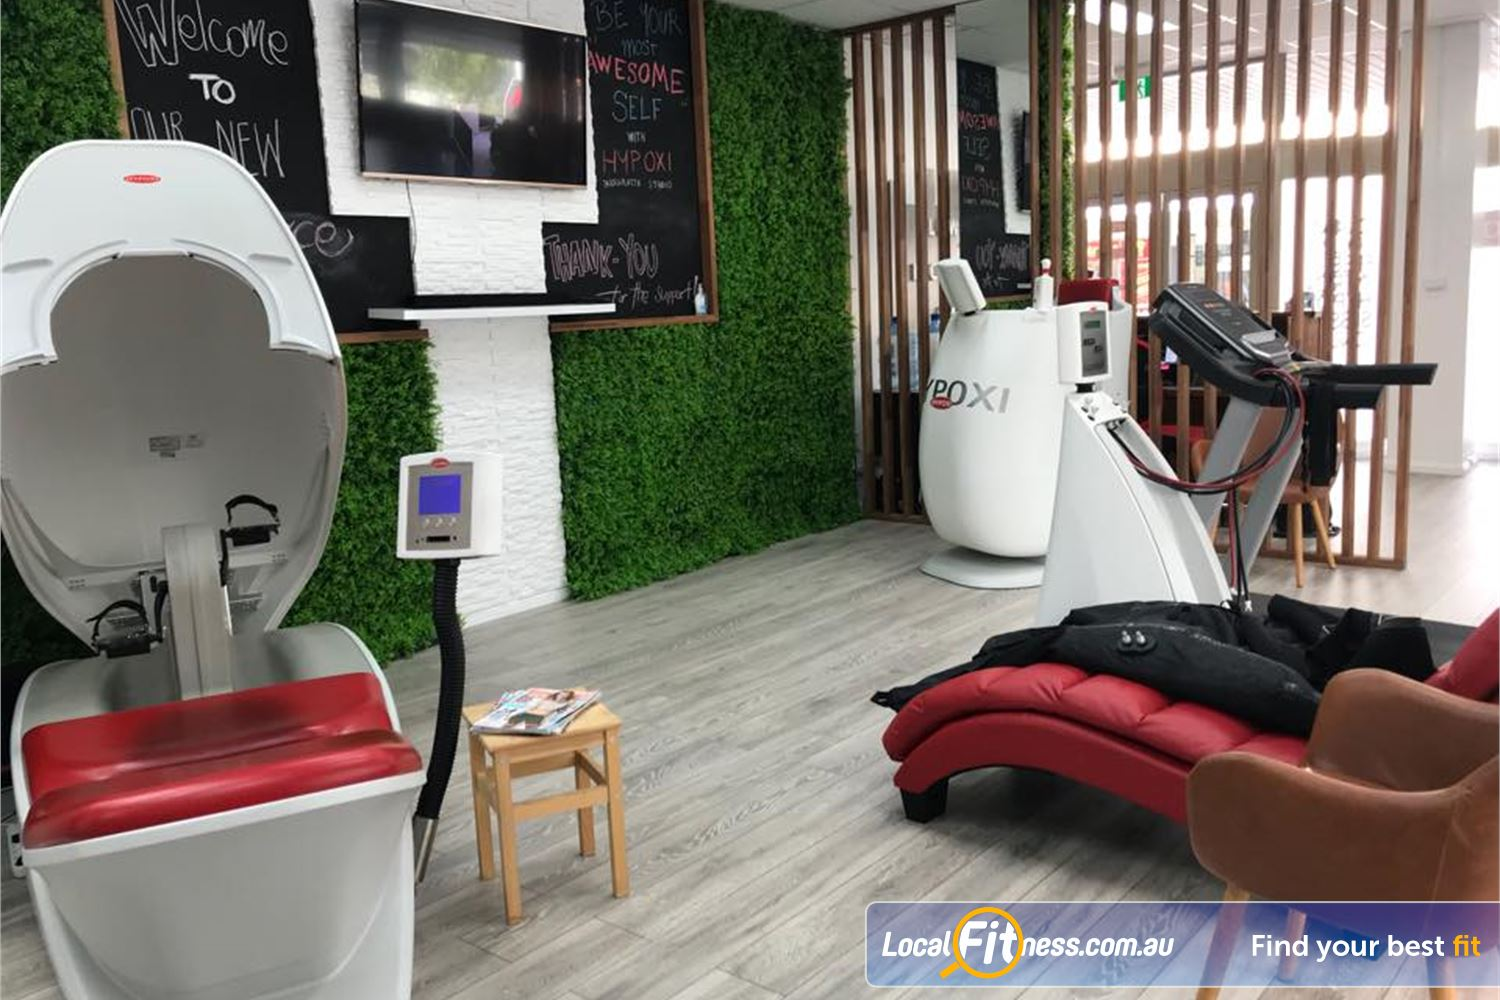 HYPOXI Weight Loss Near Middle Park The HYPOXI L250 is like a cycle machine from the future.